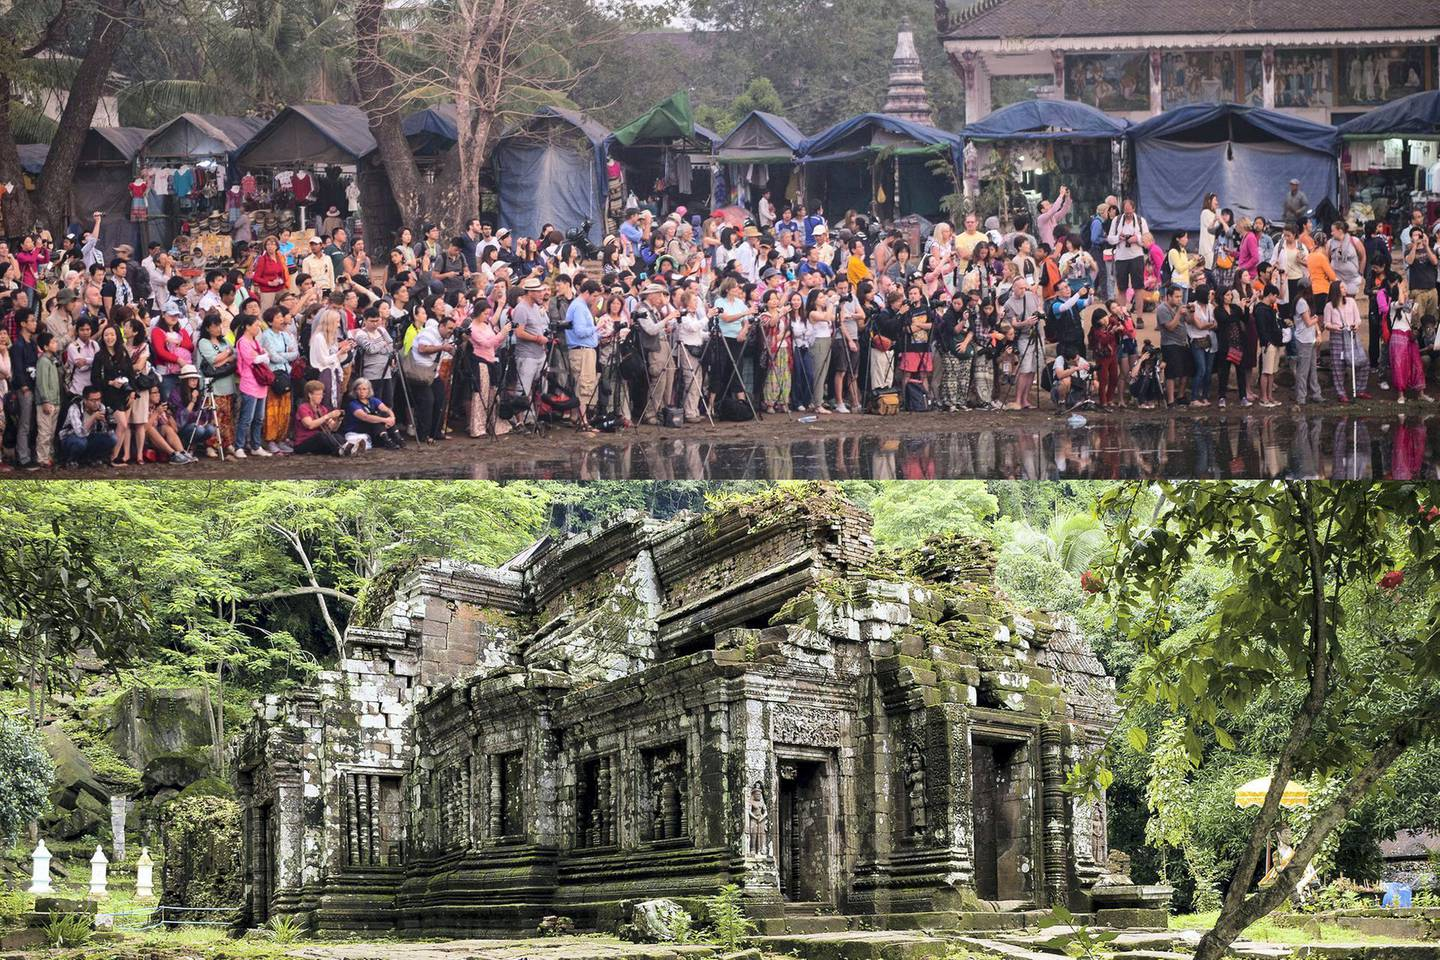 ANGKOR WAT, SIEM REAP, CAMBODIA - 2015/02/13: Tourist gather to watch the sunrise at Angkor Wat complex Saturday Feb. 14, 2015.   A stable Cambodia has meant that each year since records were kept in 1993 the number of tourist to visit has grown from about 100,000 a year to over four million. The larger percentage of current visitors is from Vietnam with China coming in second place.  Many officials are now admitting that the temples near Siem Reap, Cambodia,  that survived 1000 plus years of being swallow by the jungle are now in peril from too many tourist walking and touching the ancient stones. (Photo by David Longstreath/David Longstreath/LightRocket via Getty Images)